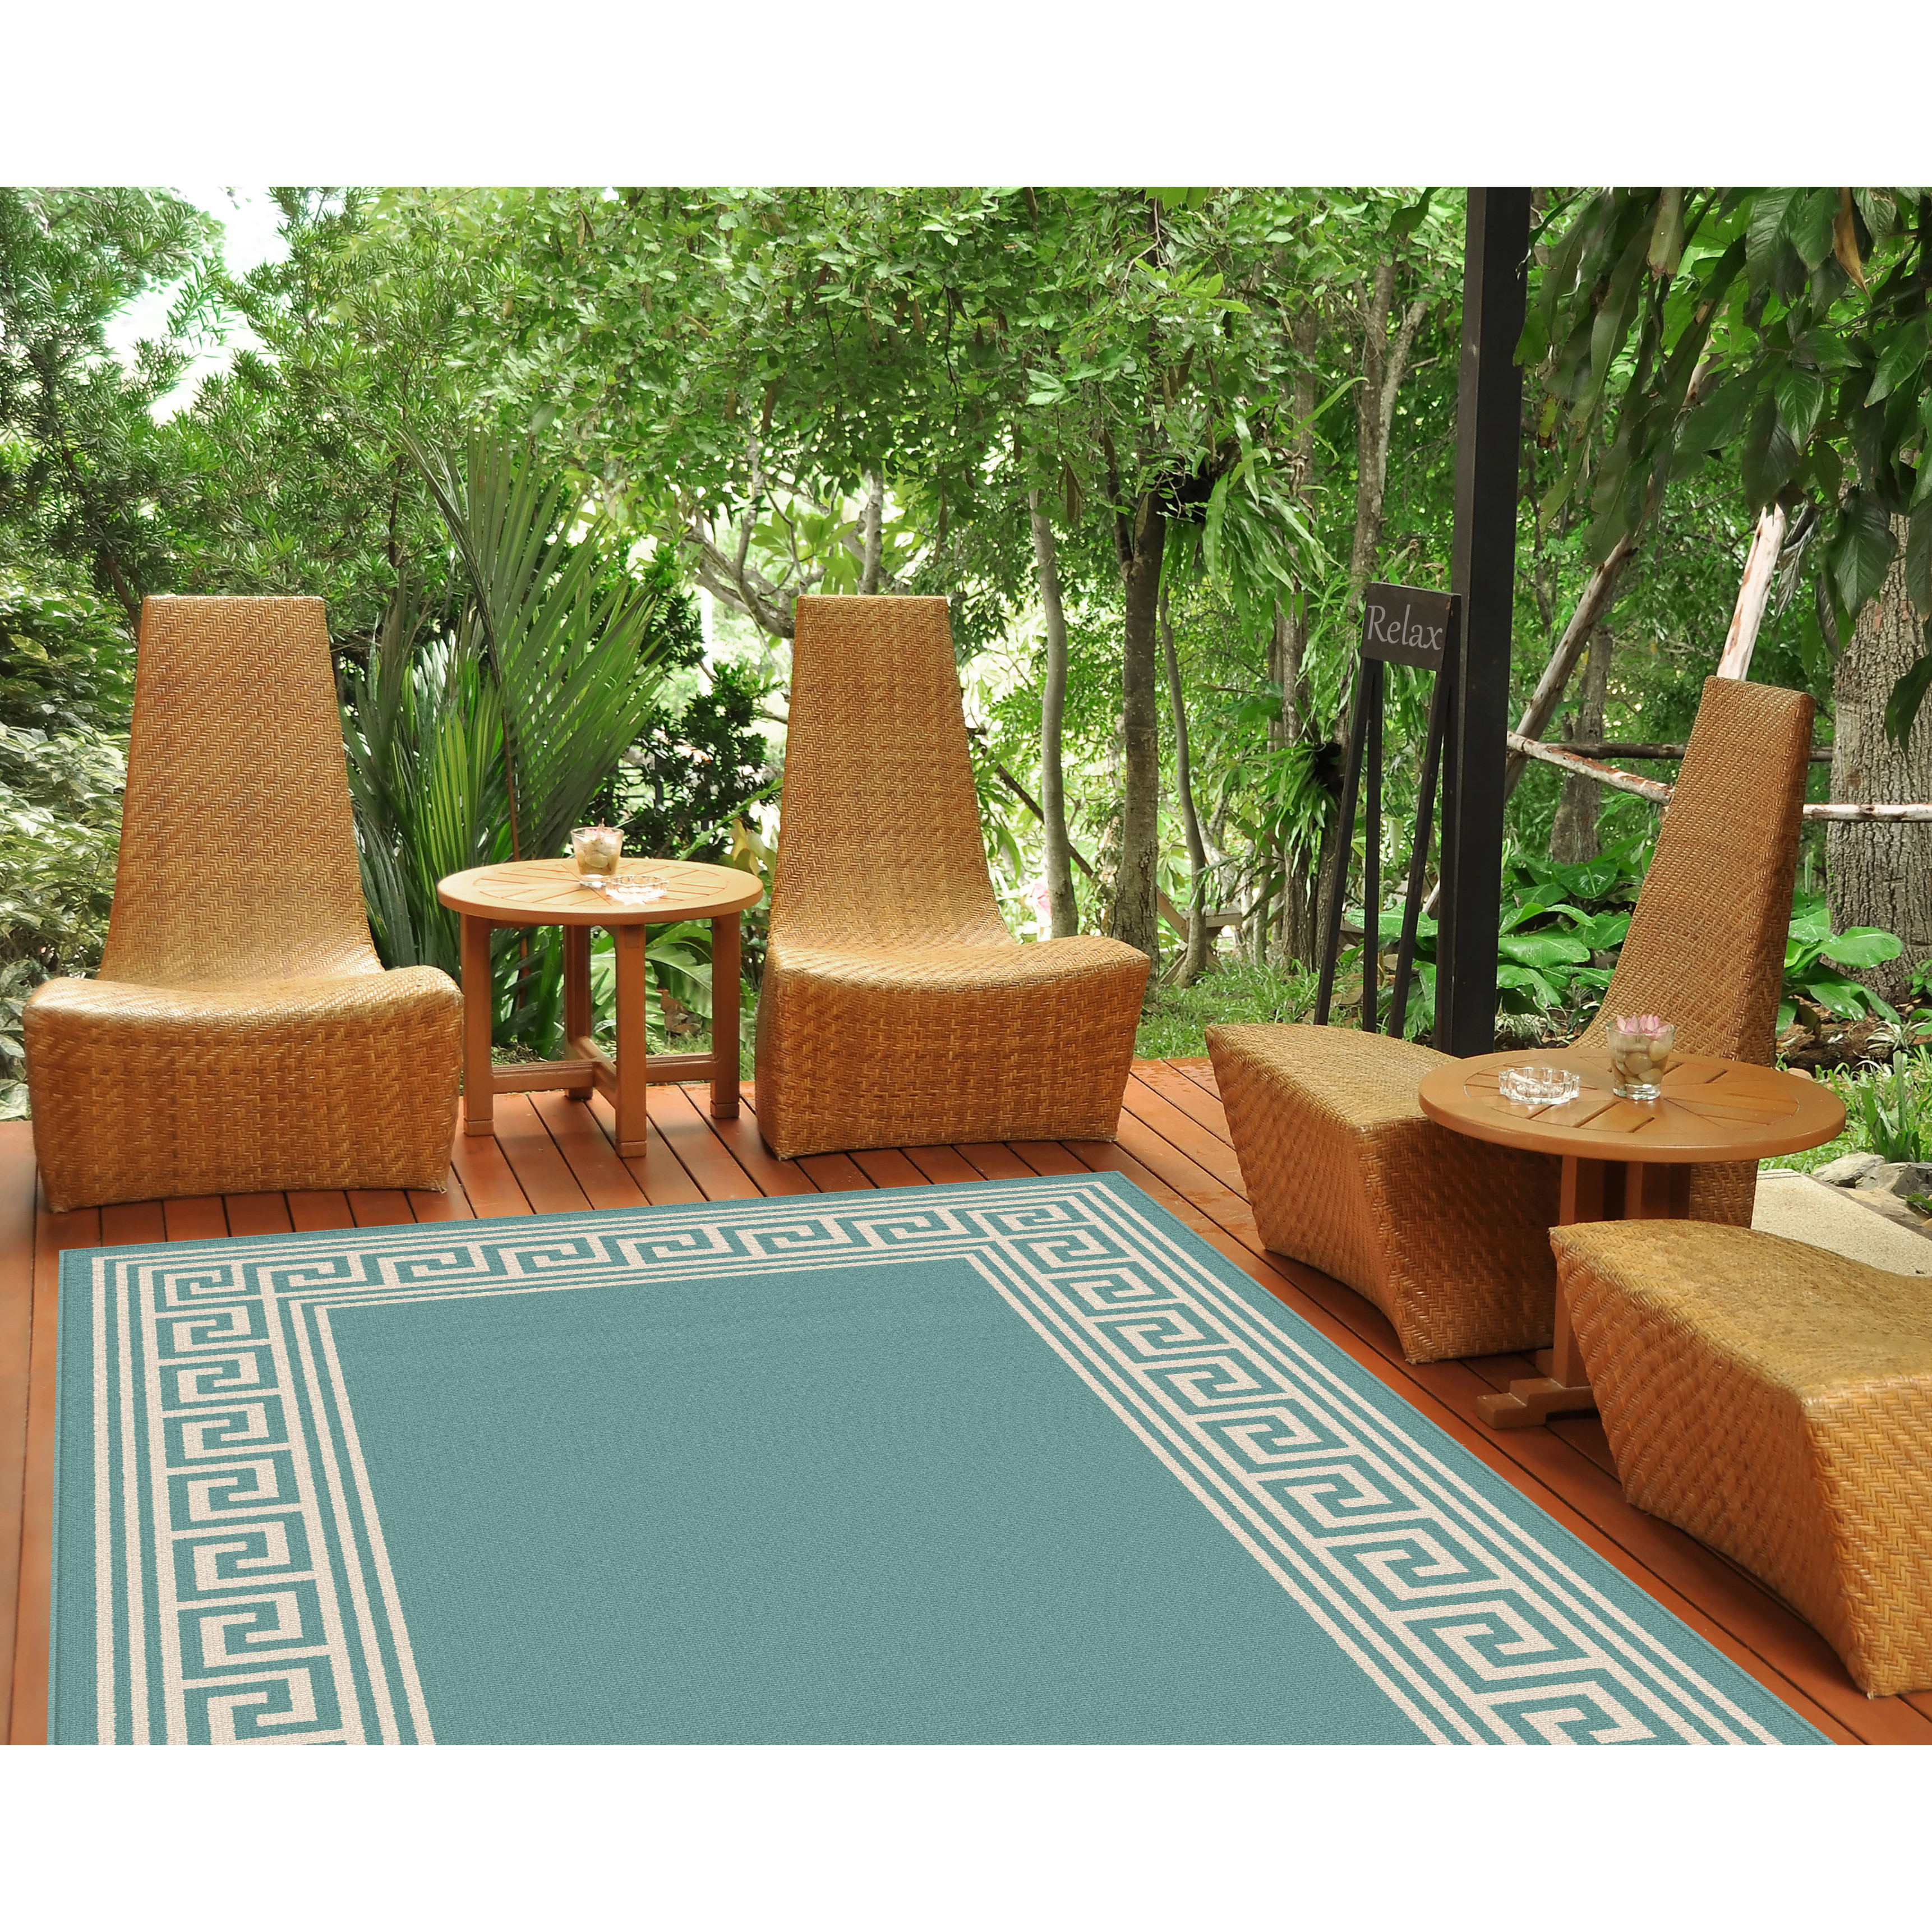 Best ideas about Outdoor Area Rugs . Save or Pin Threadbind Ndefu Aqua Outdoor Area Rug & Reviews Now.